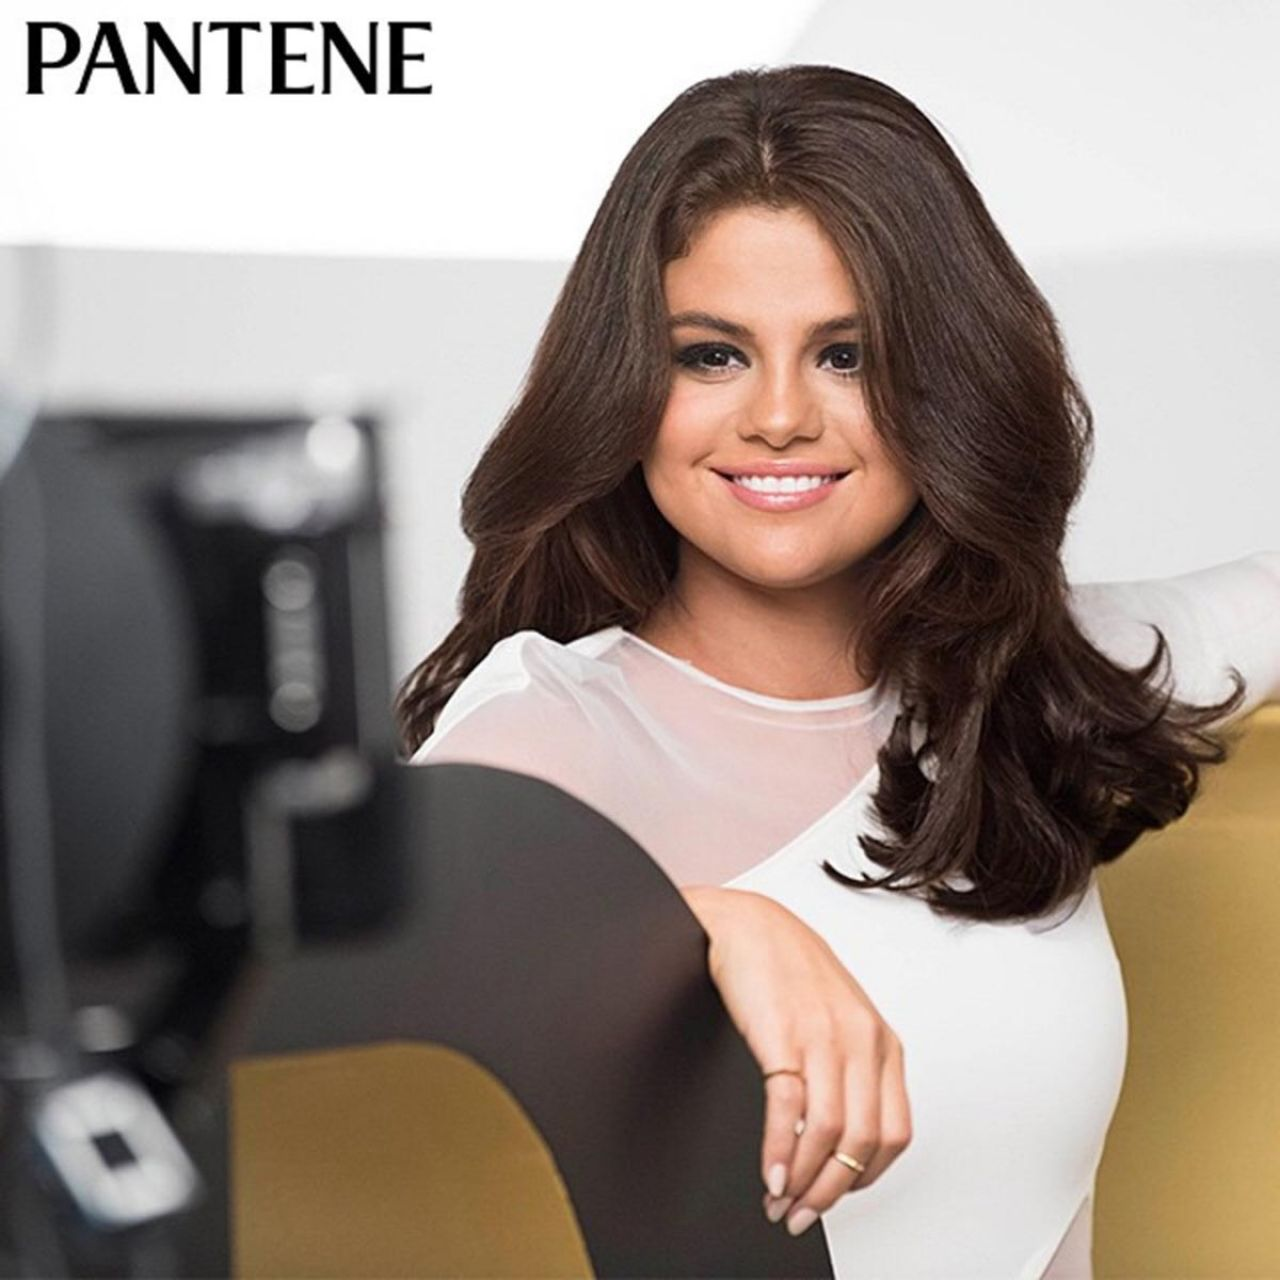 Selena Gomez stuns as the new face and hair of Pantene